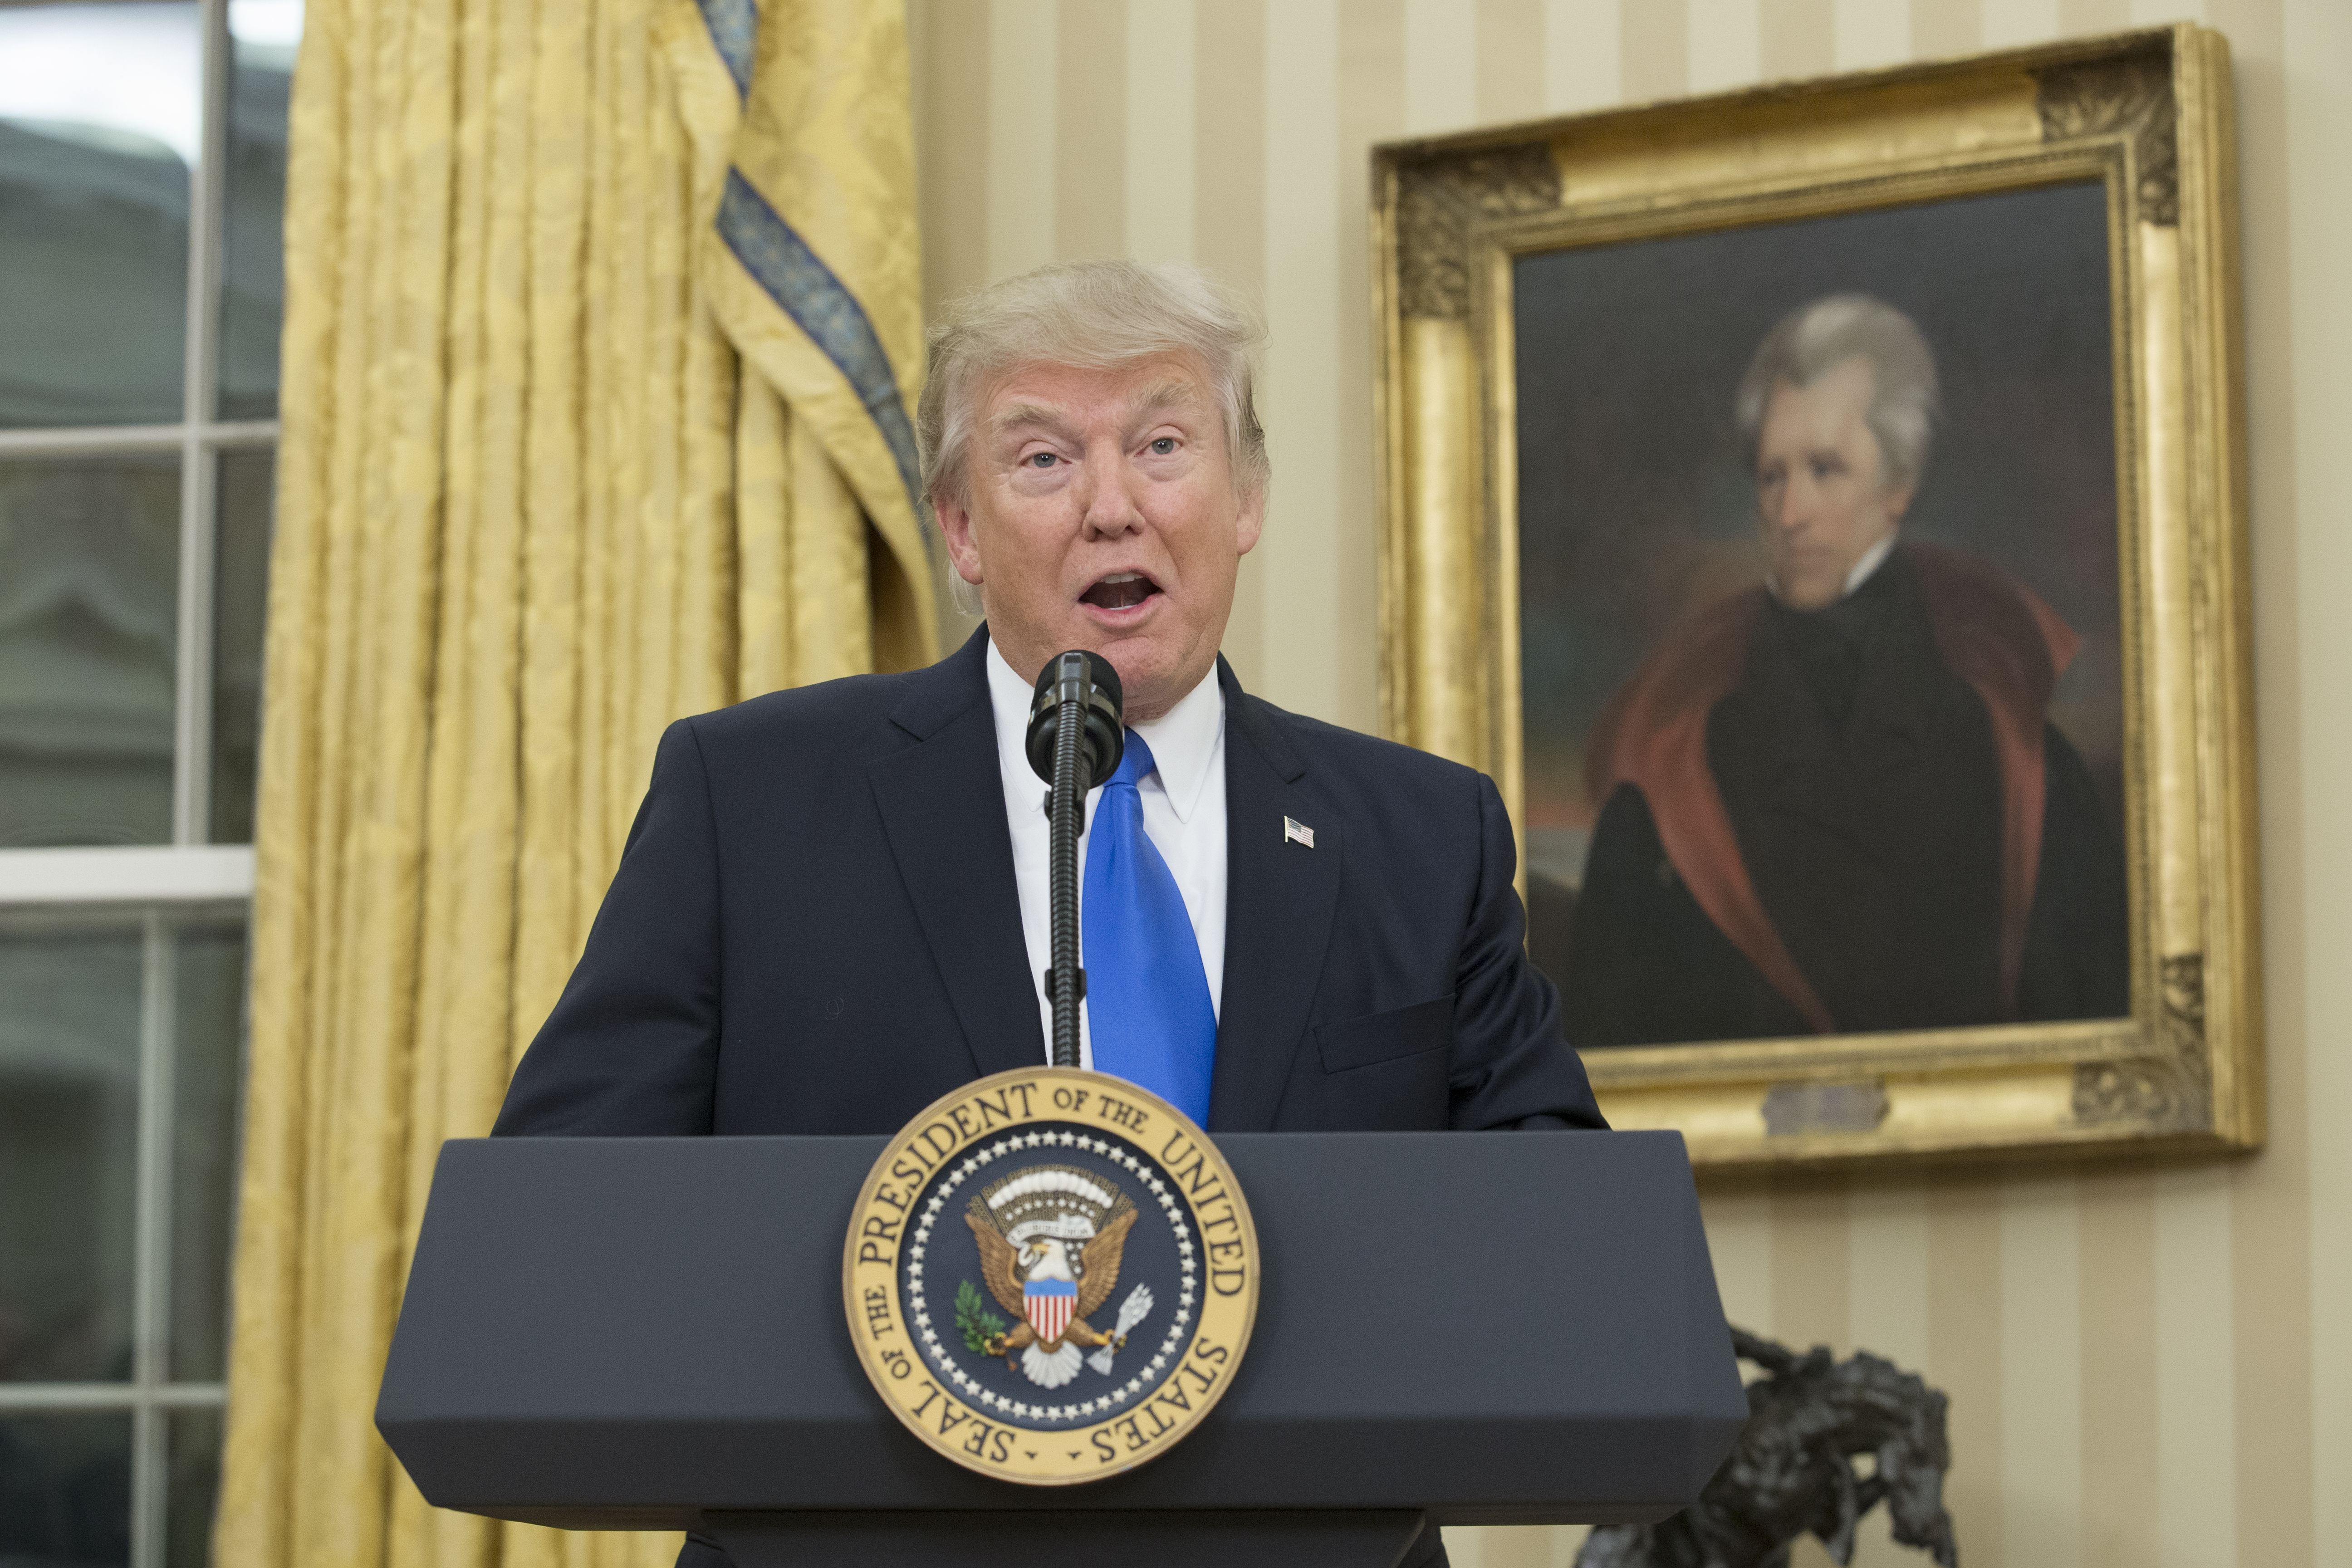 President Donald Trump stands before a portrait of President Andrew Jackson in the Oval Office.